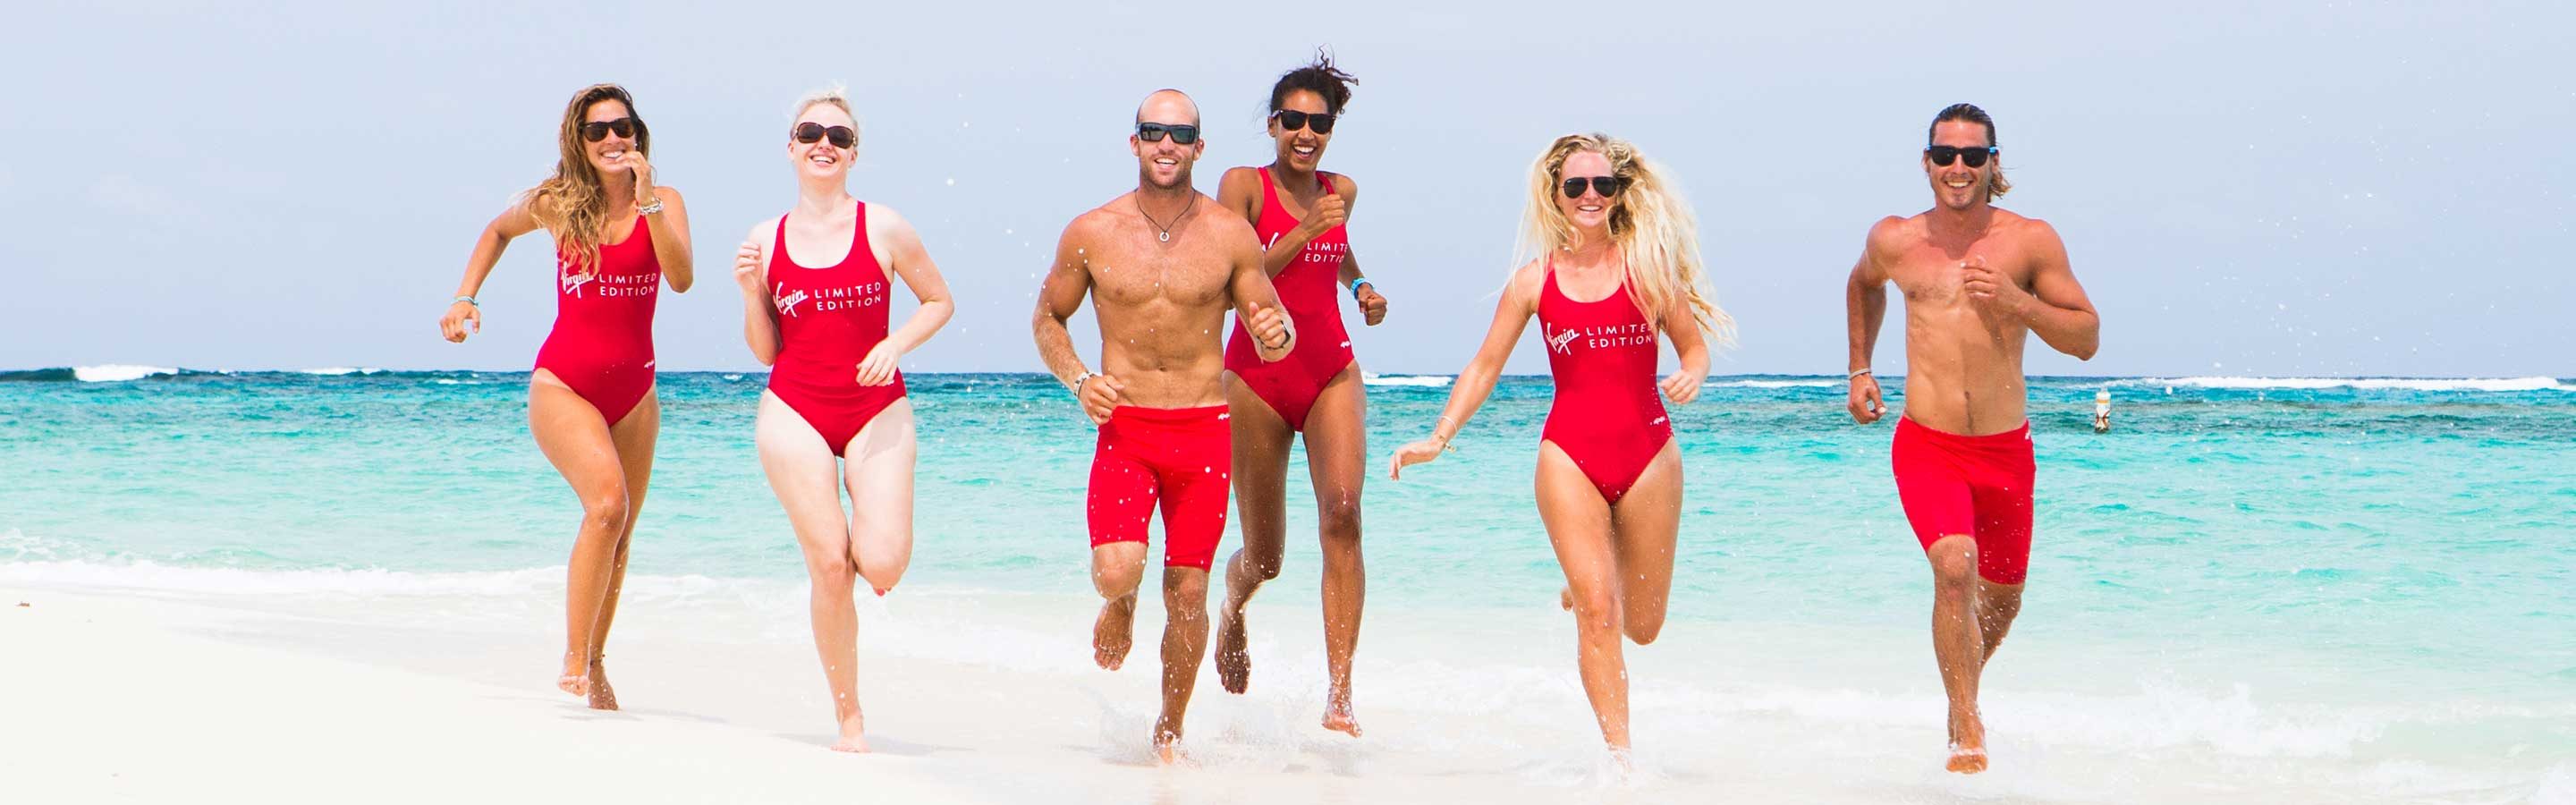 Five people wearing red swimsuits or swim shorts run on a white sandy beach